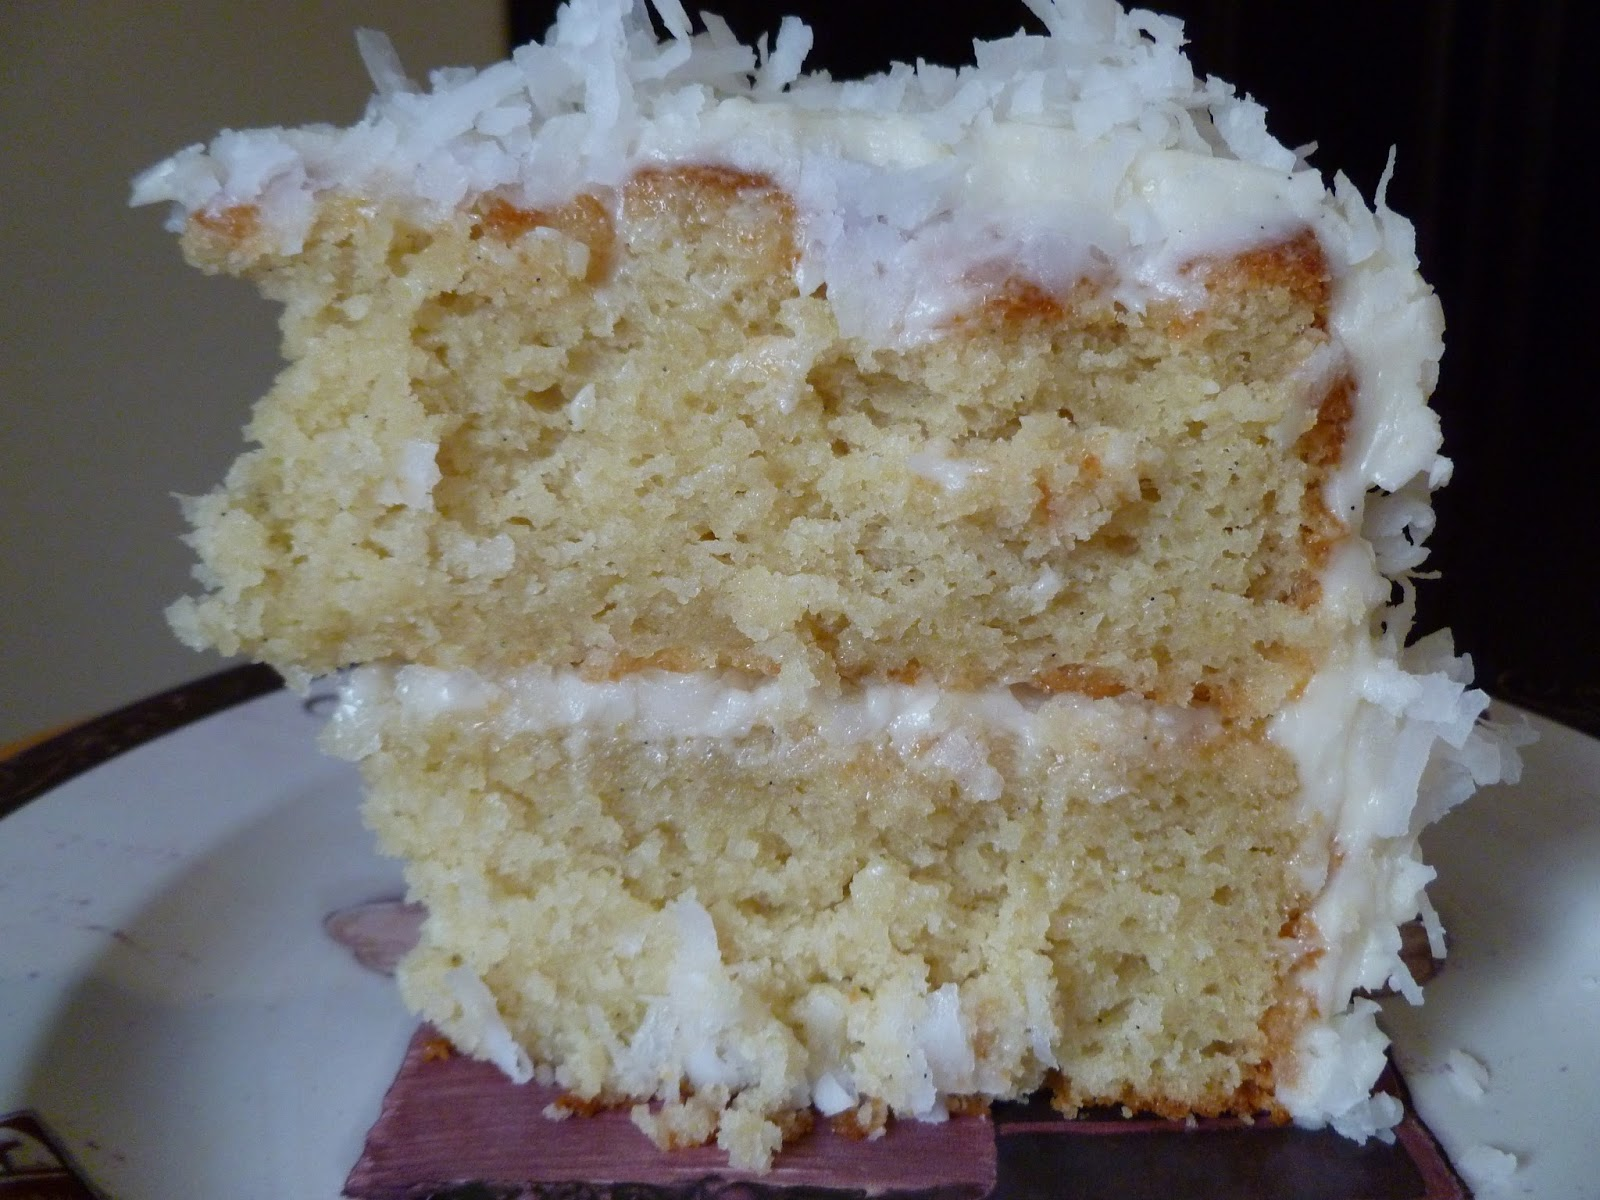 The Pastry Chef's Baking: Coconut Cake with Cream Cheese ...